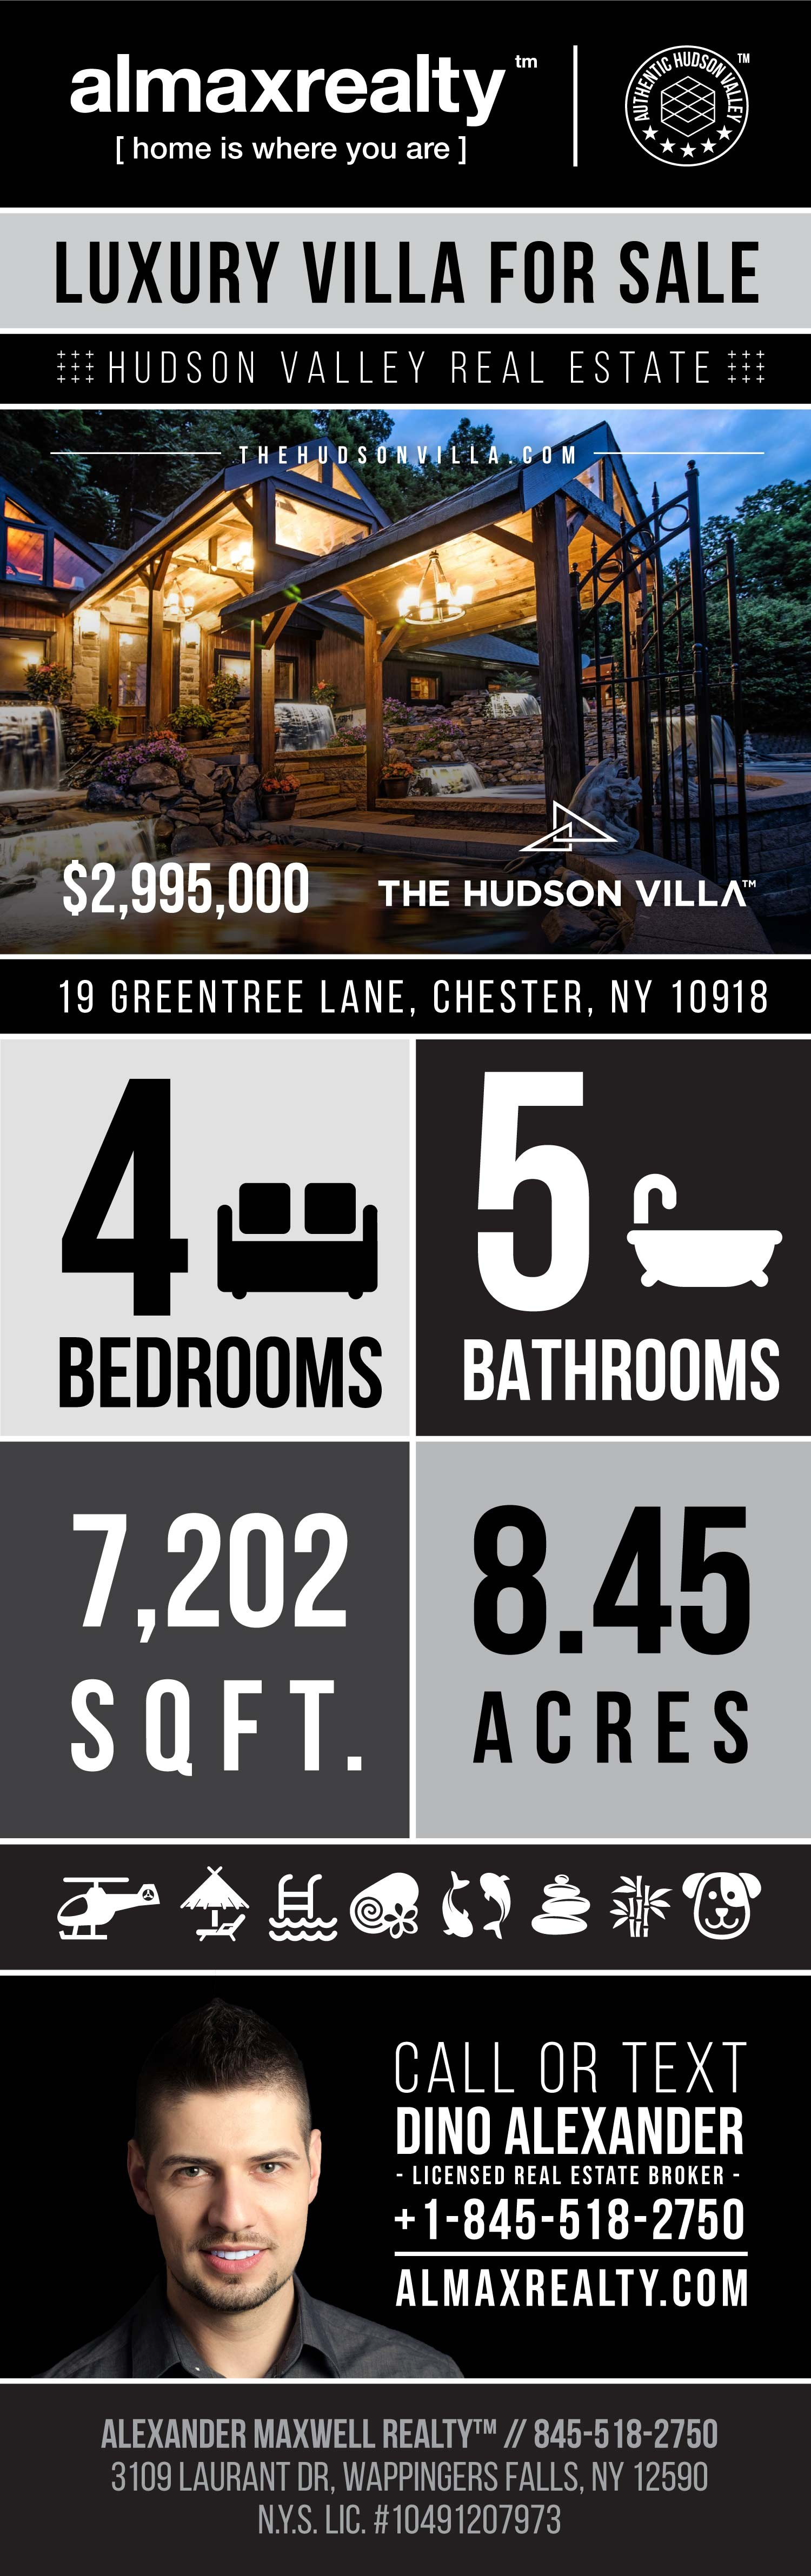 Infographic - Luxury Villa for Sale in Chester, New York - The Hudson Villa